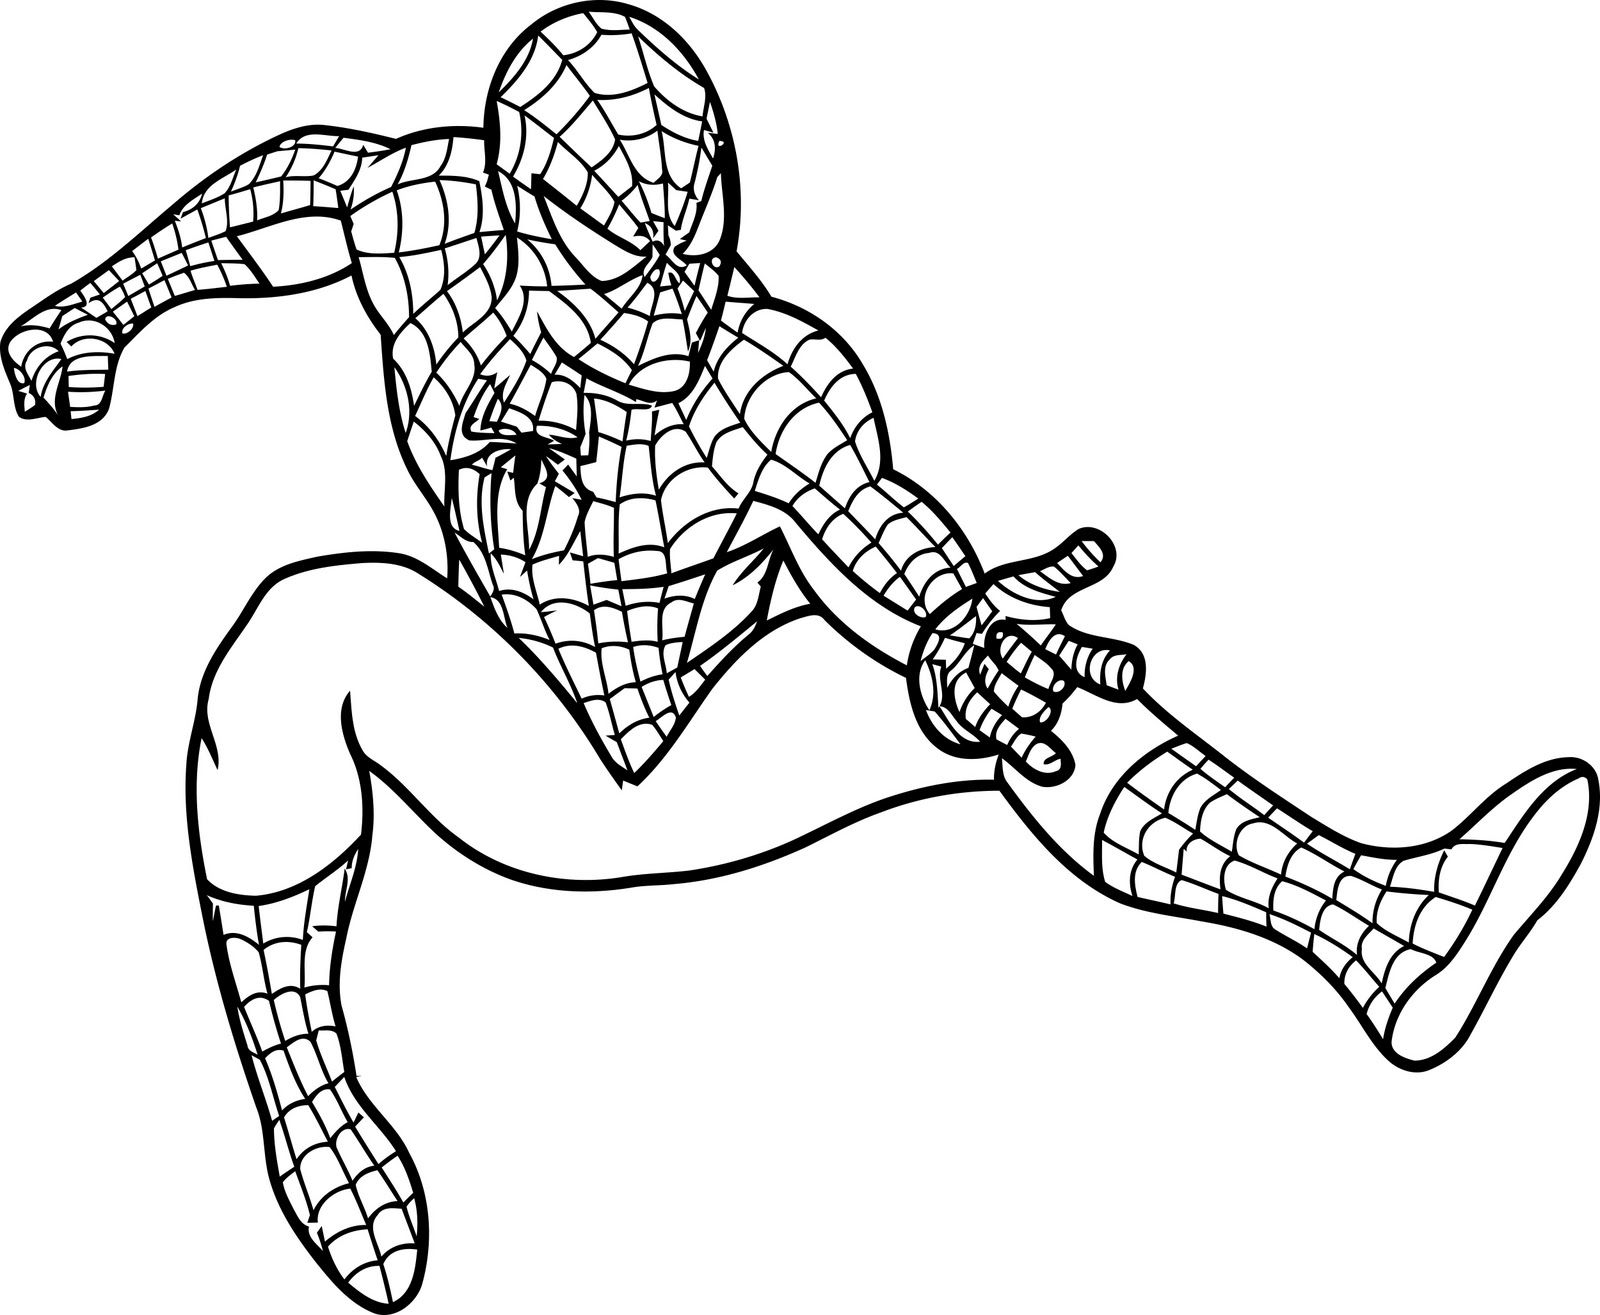 Spiderman Coloring Pages Free Spiderman Coloring Pages For Kids Printable